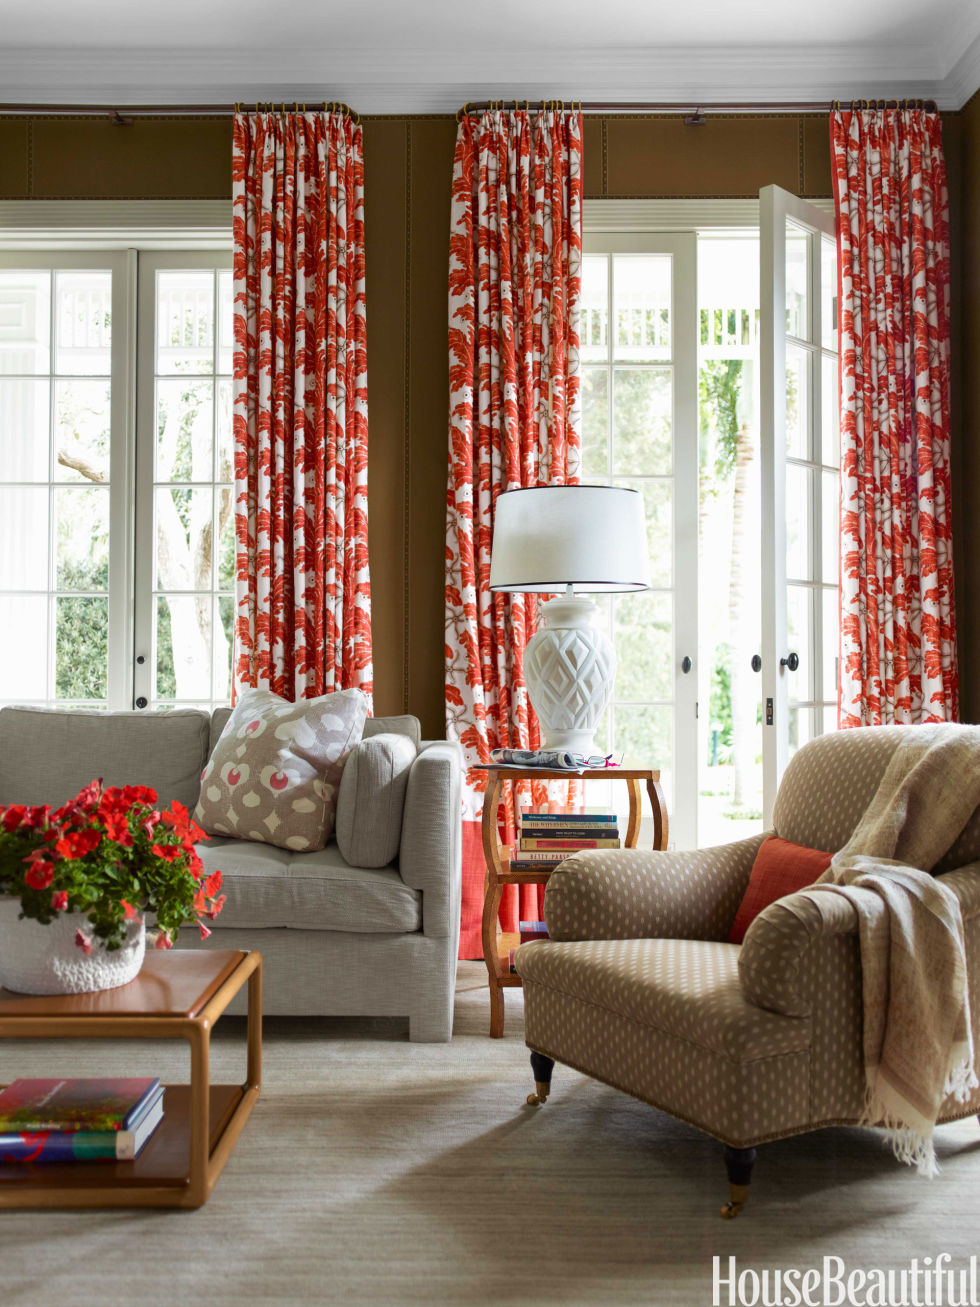 Best Living Room Curtains 50 modern window treatment ideas - best curtains and window coverings